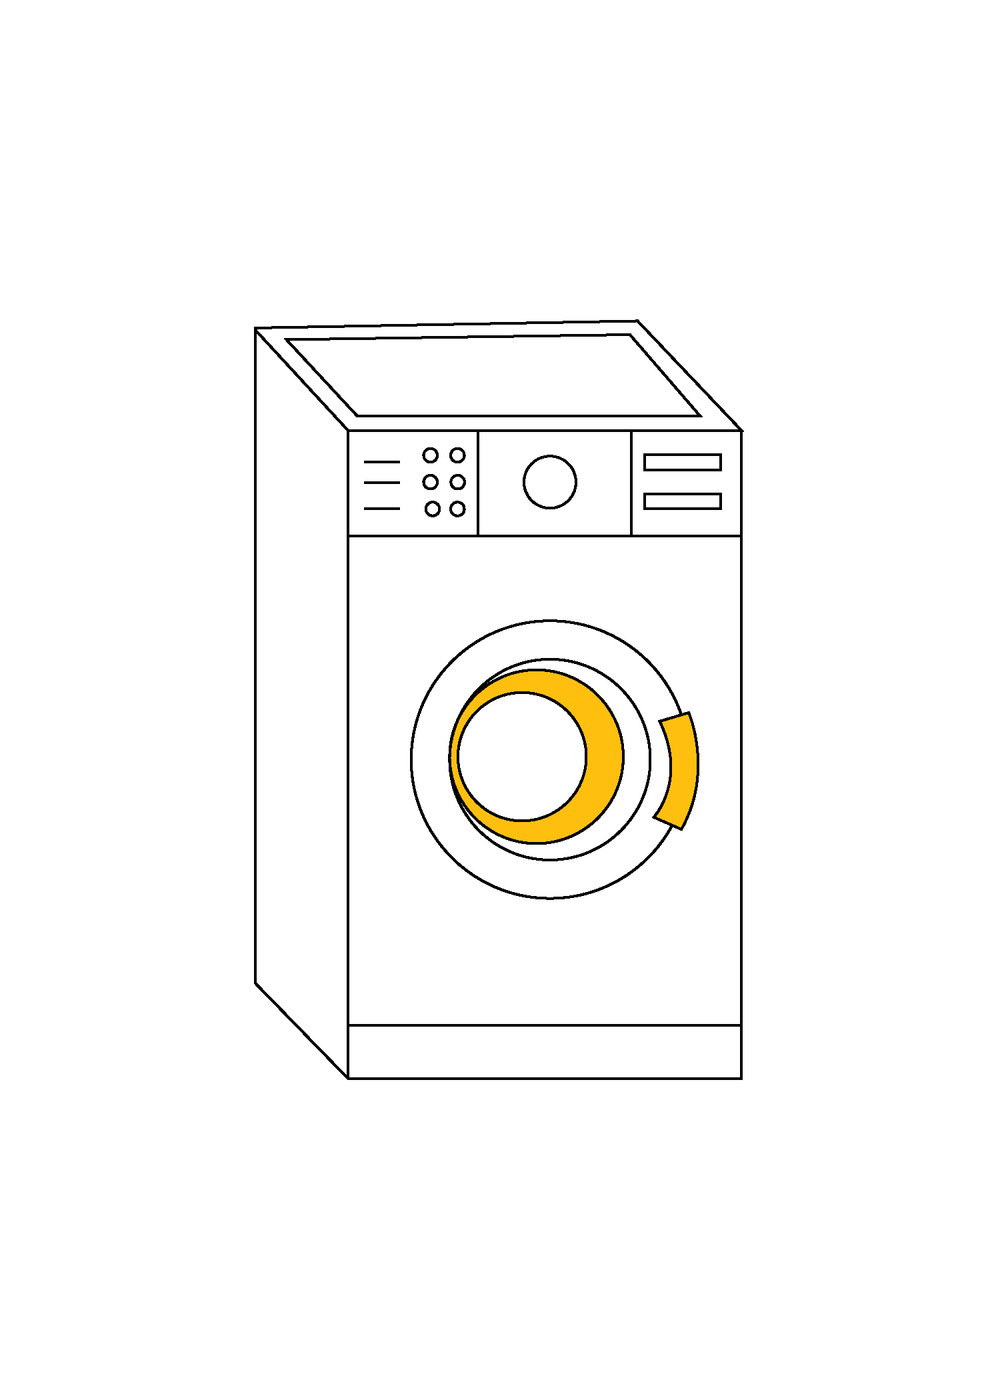 WASHER-01-01.png